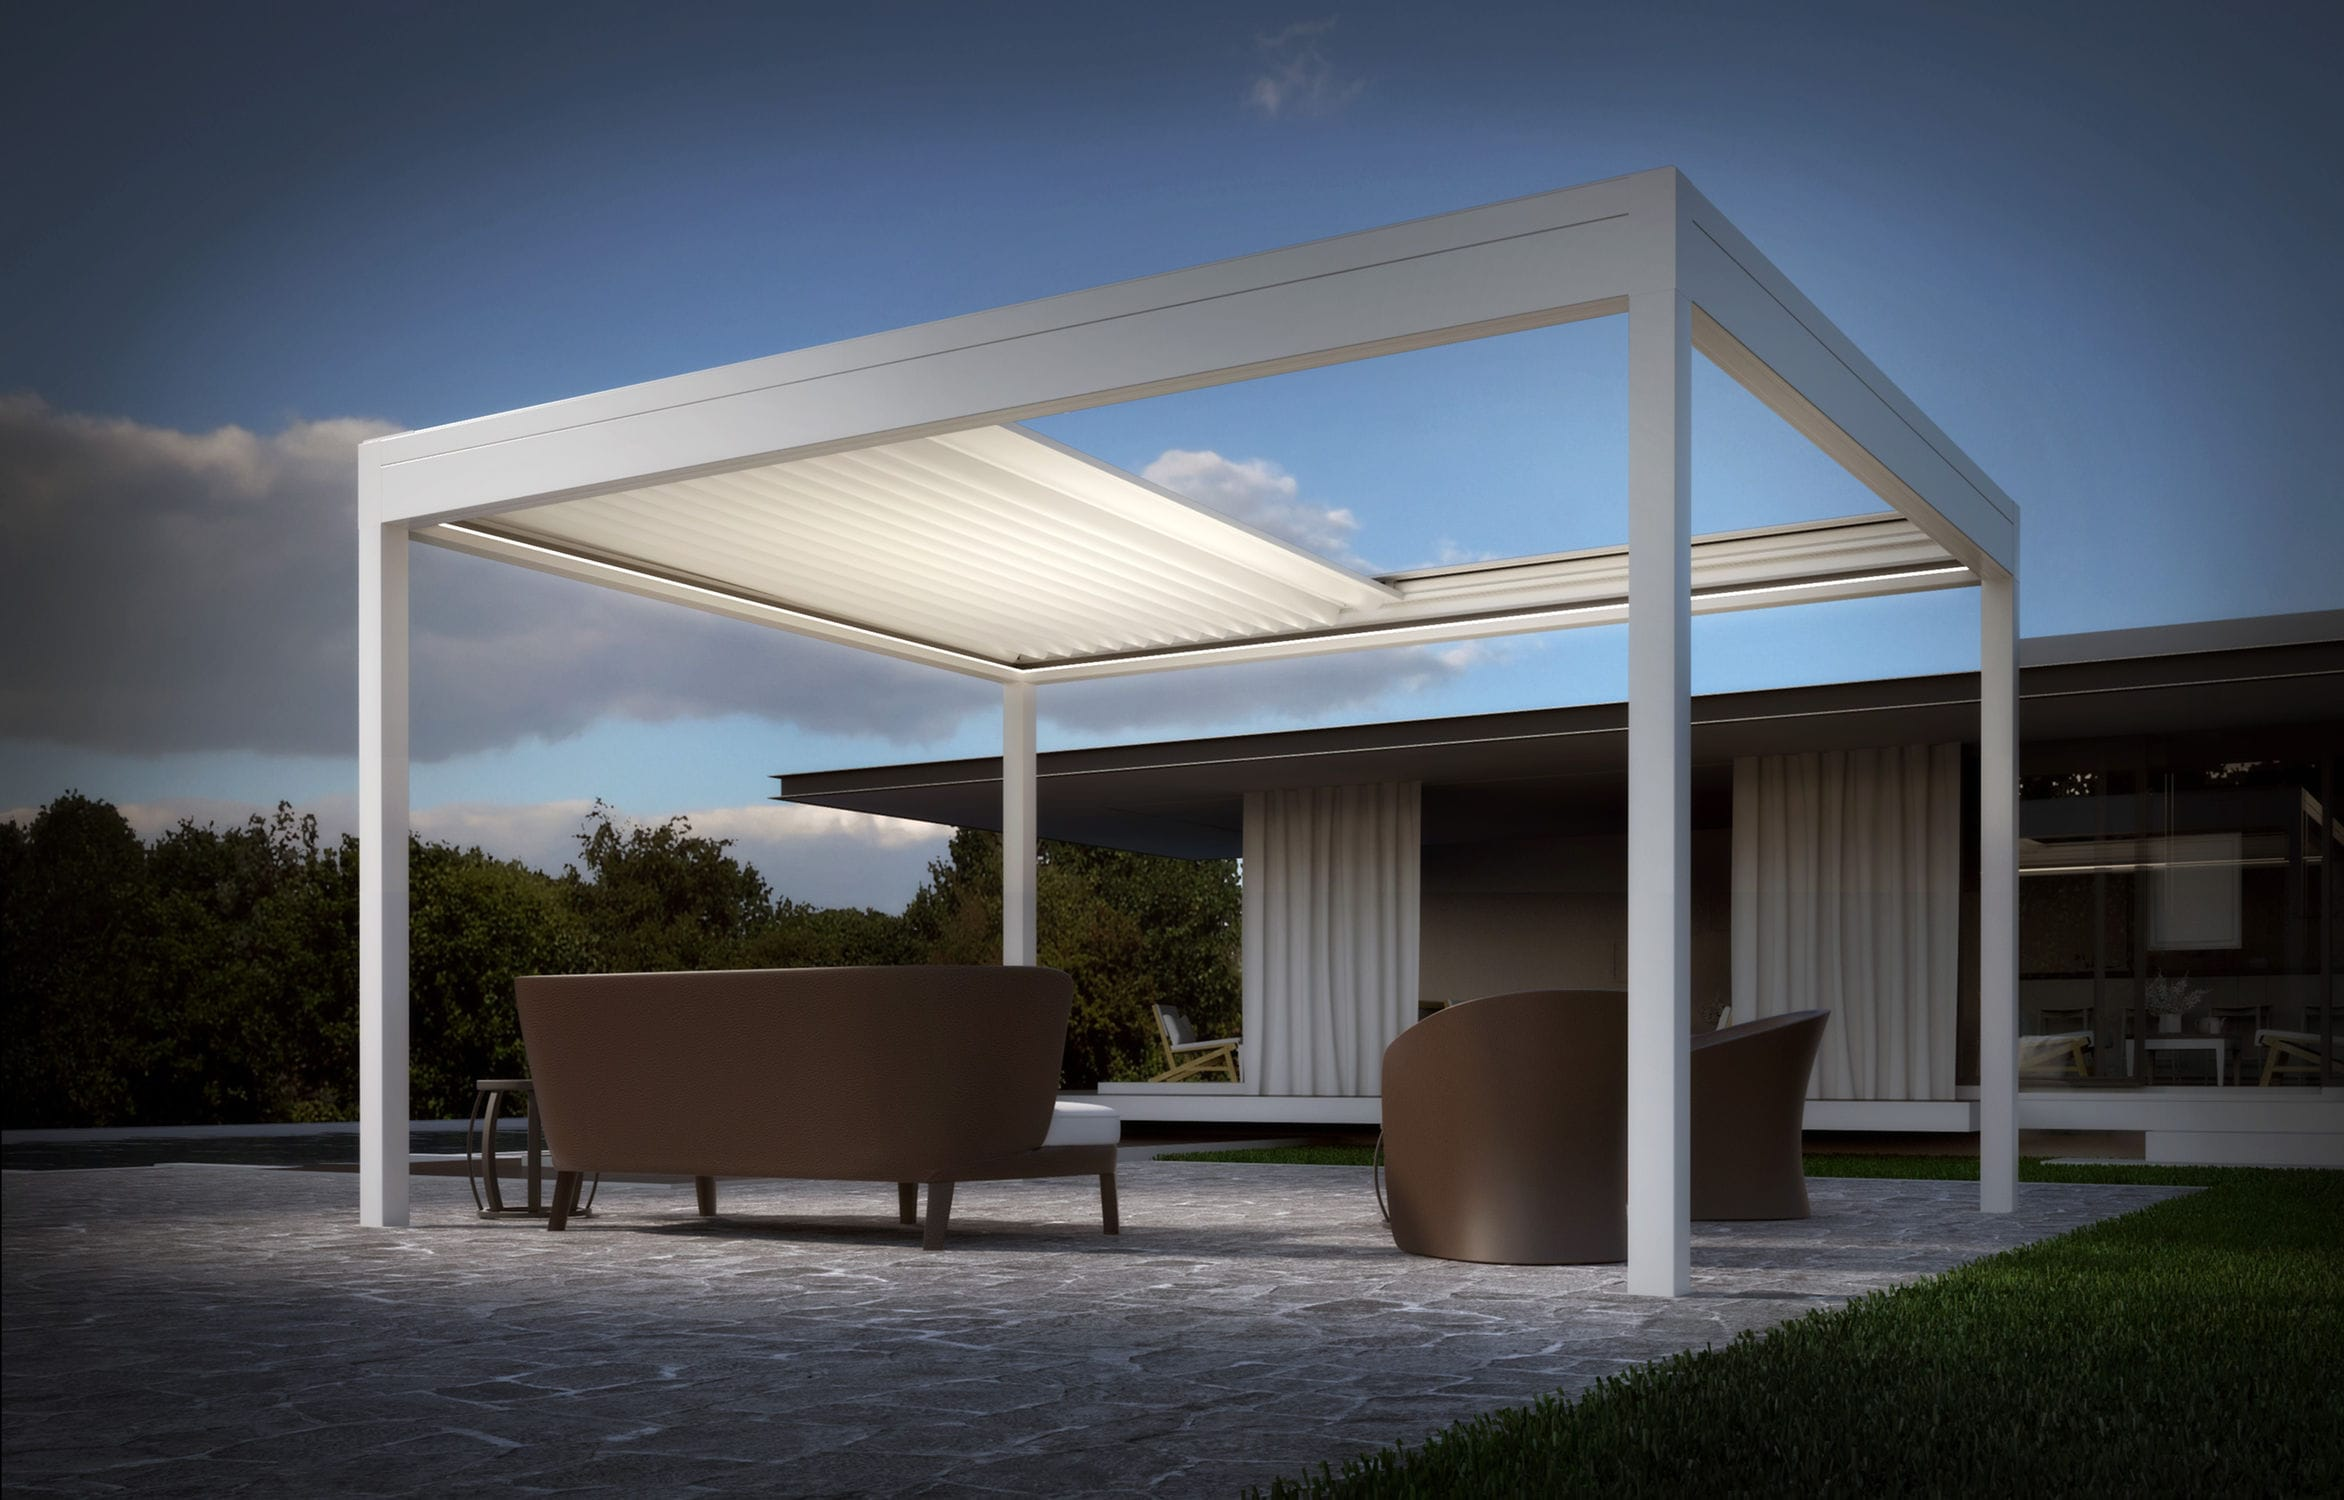 Self-supporting pergola / aluminum / fabric canopy / PVC fabric sliding canopy - ARMONIA AUTOPORTANTE & Self-supporting pergola / aluminum / fabric canopy / PVC fabric ...